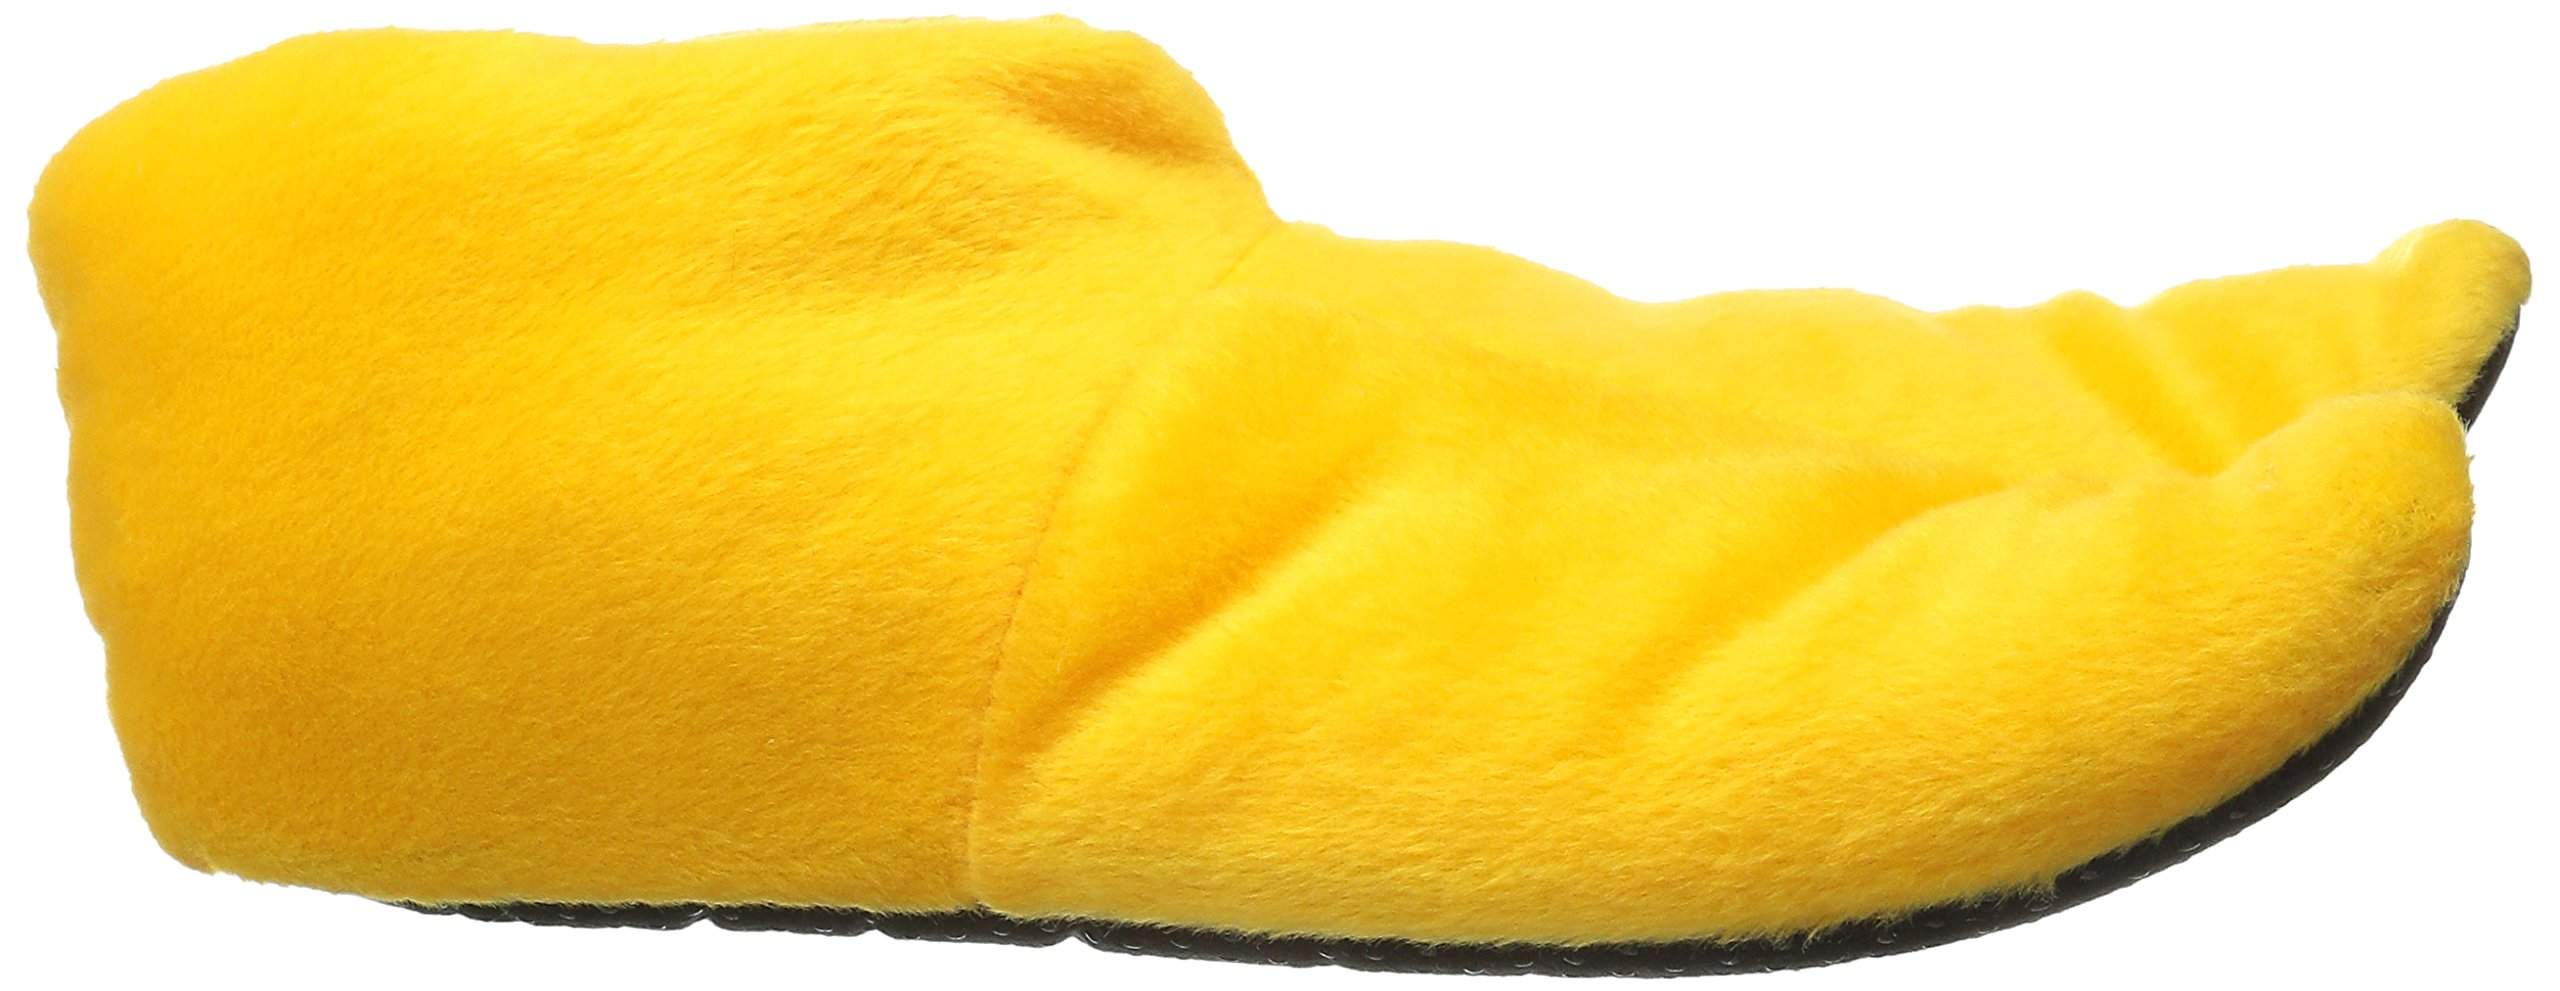 Silver Lilly LED Light Up Duck Feet Slippers Novelty Animal Costume House Shoes w//Comfort Foam